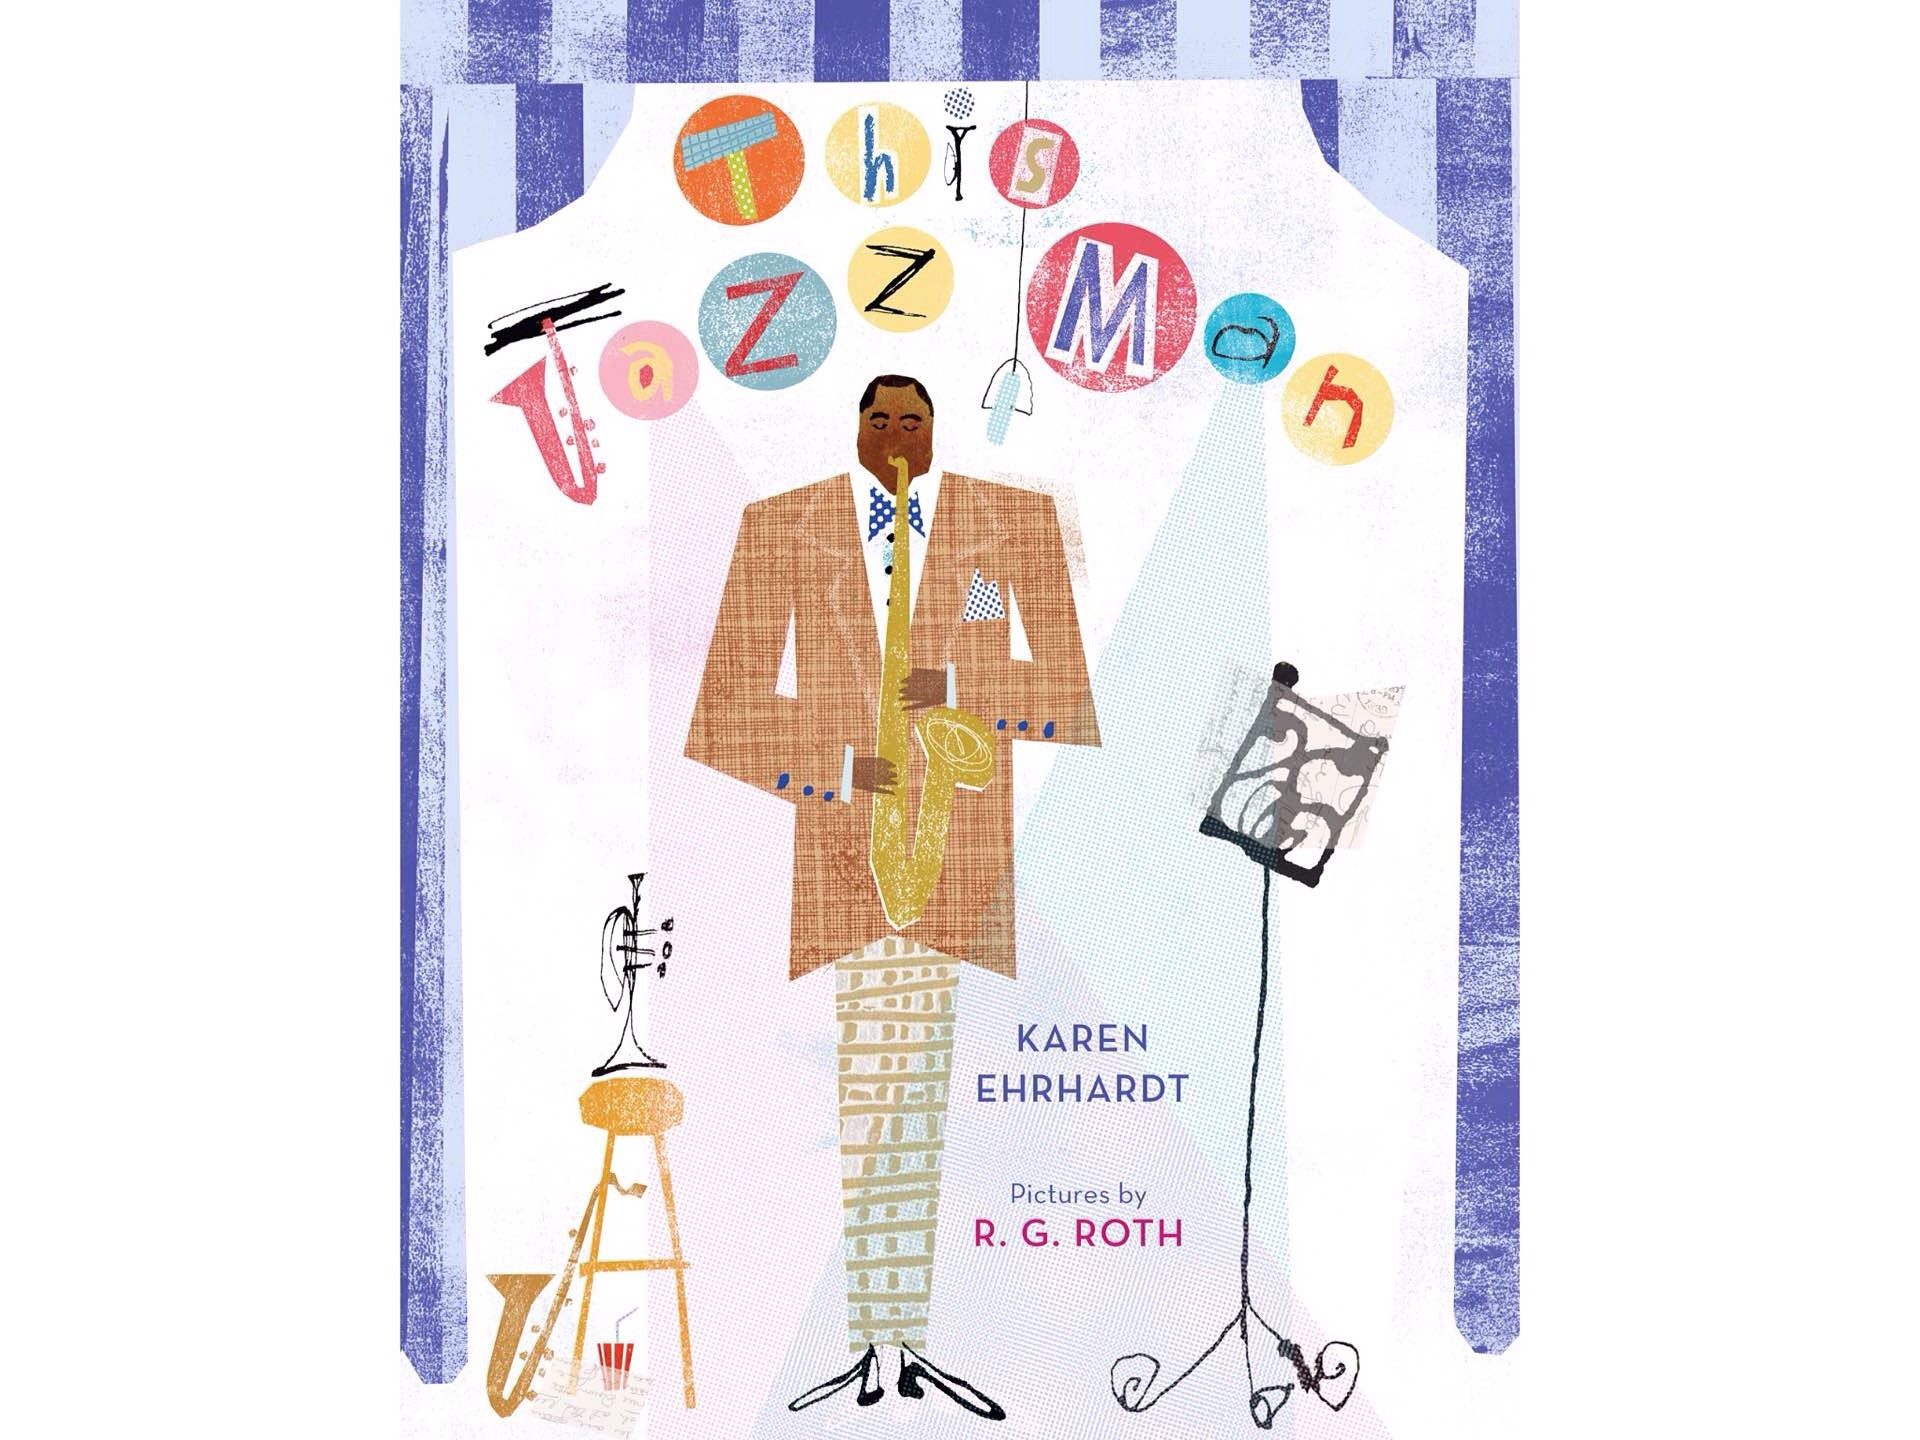 This Jazz Man by Karen Ehrhardt, illustrated by R.G. Roth.